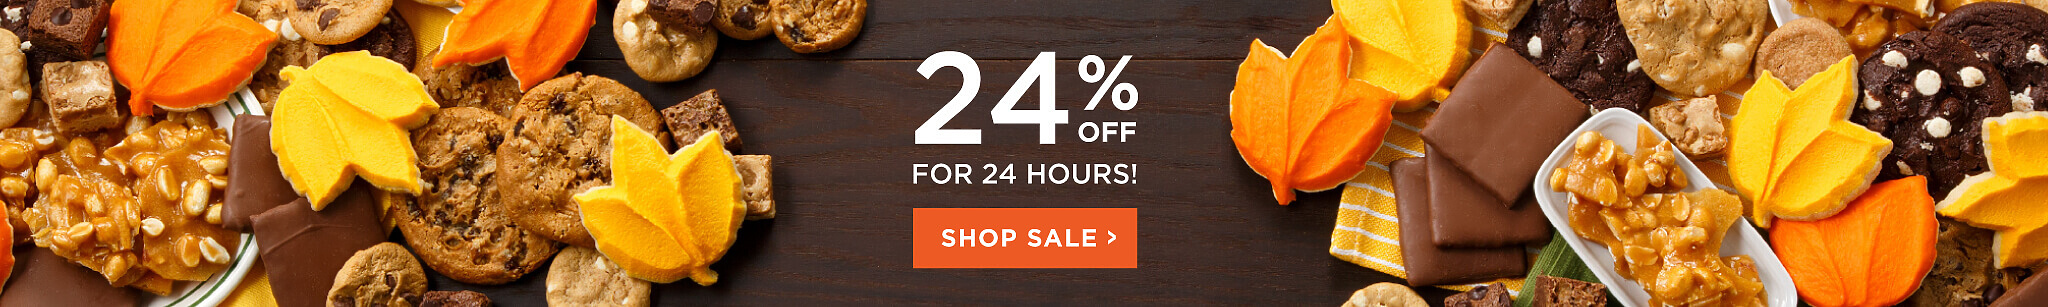 24 Hour Sale 24% Off Sitewide use code Season24